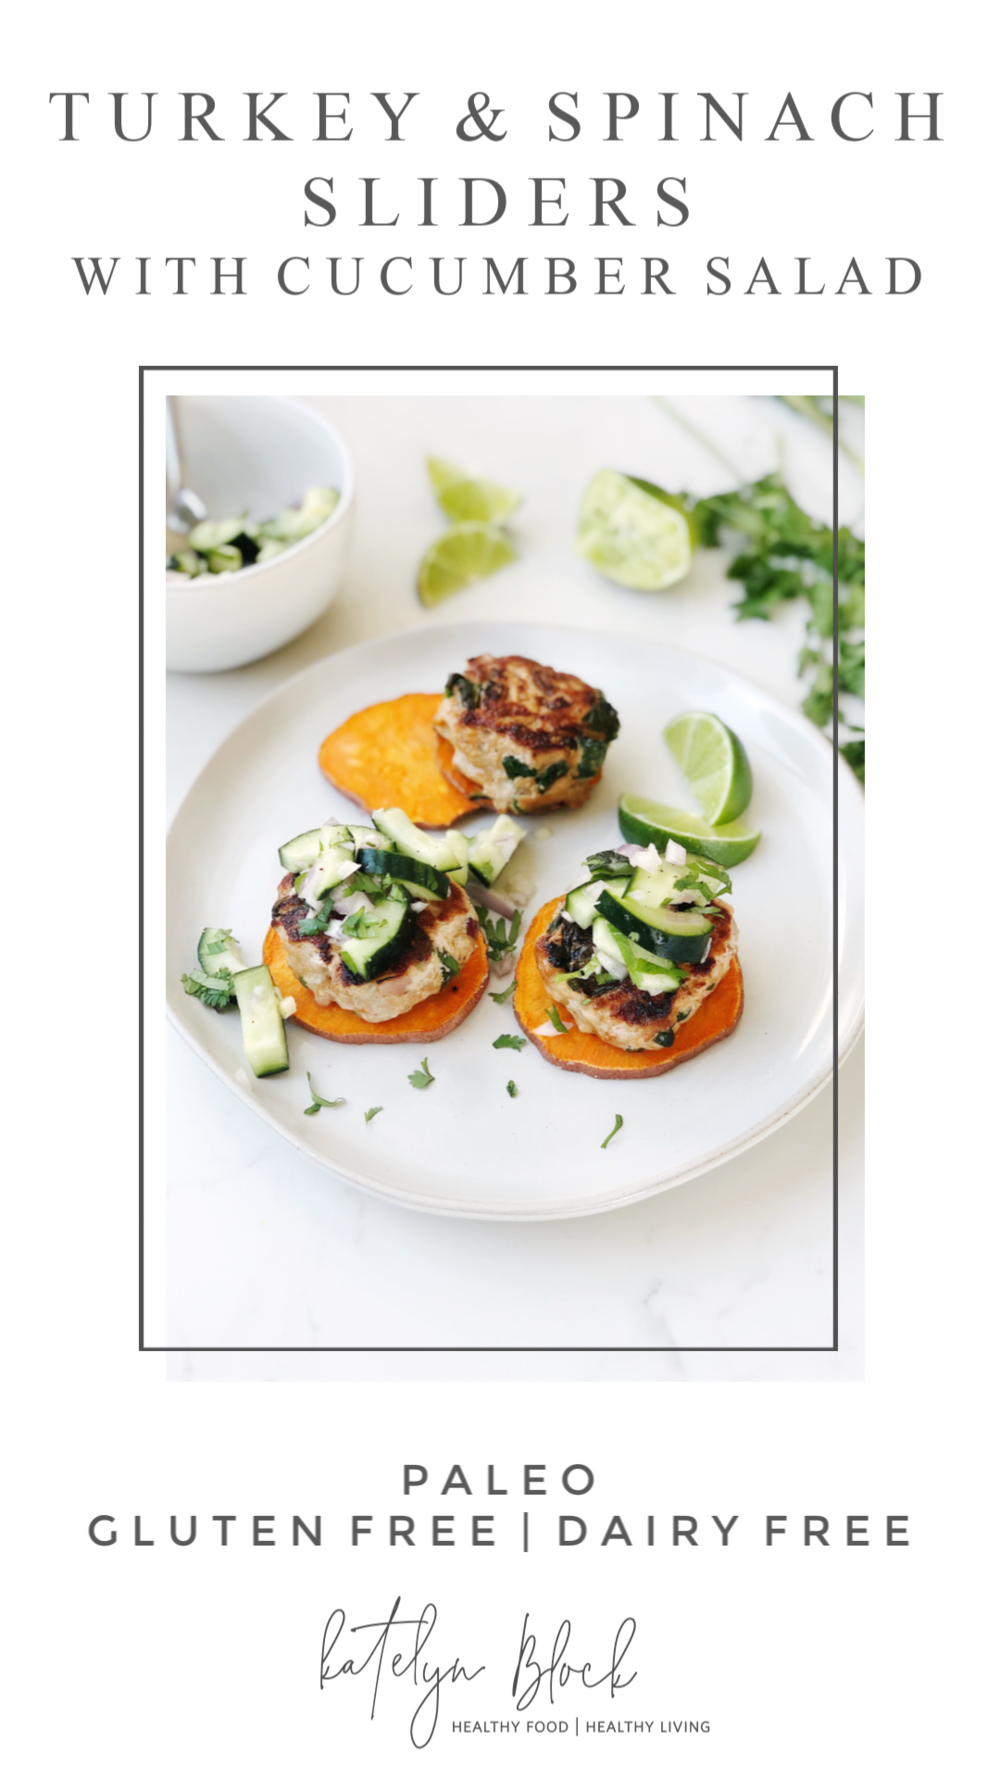 PALEO TURKEY AND SPINACH SLIDERS SWEET POTATO BUN.png